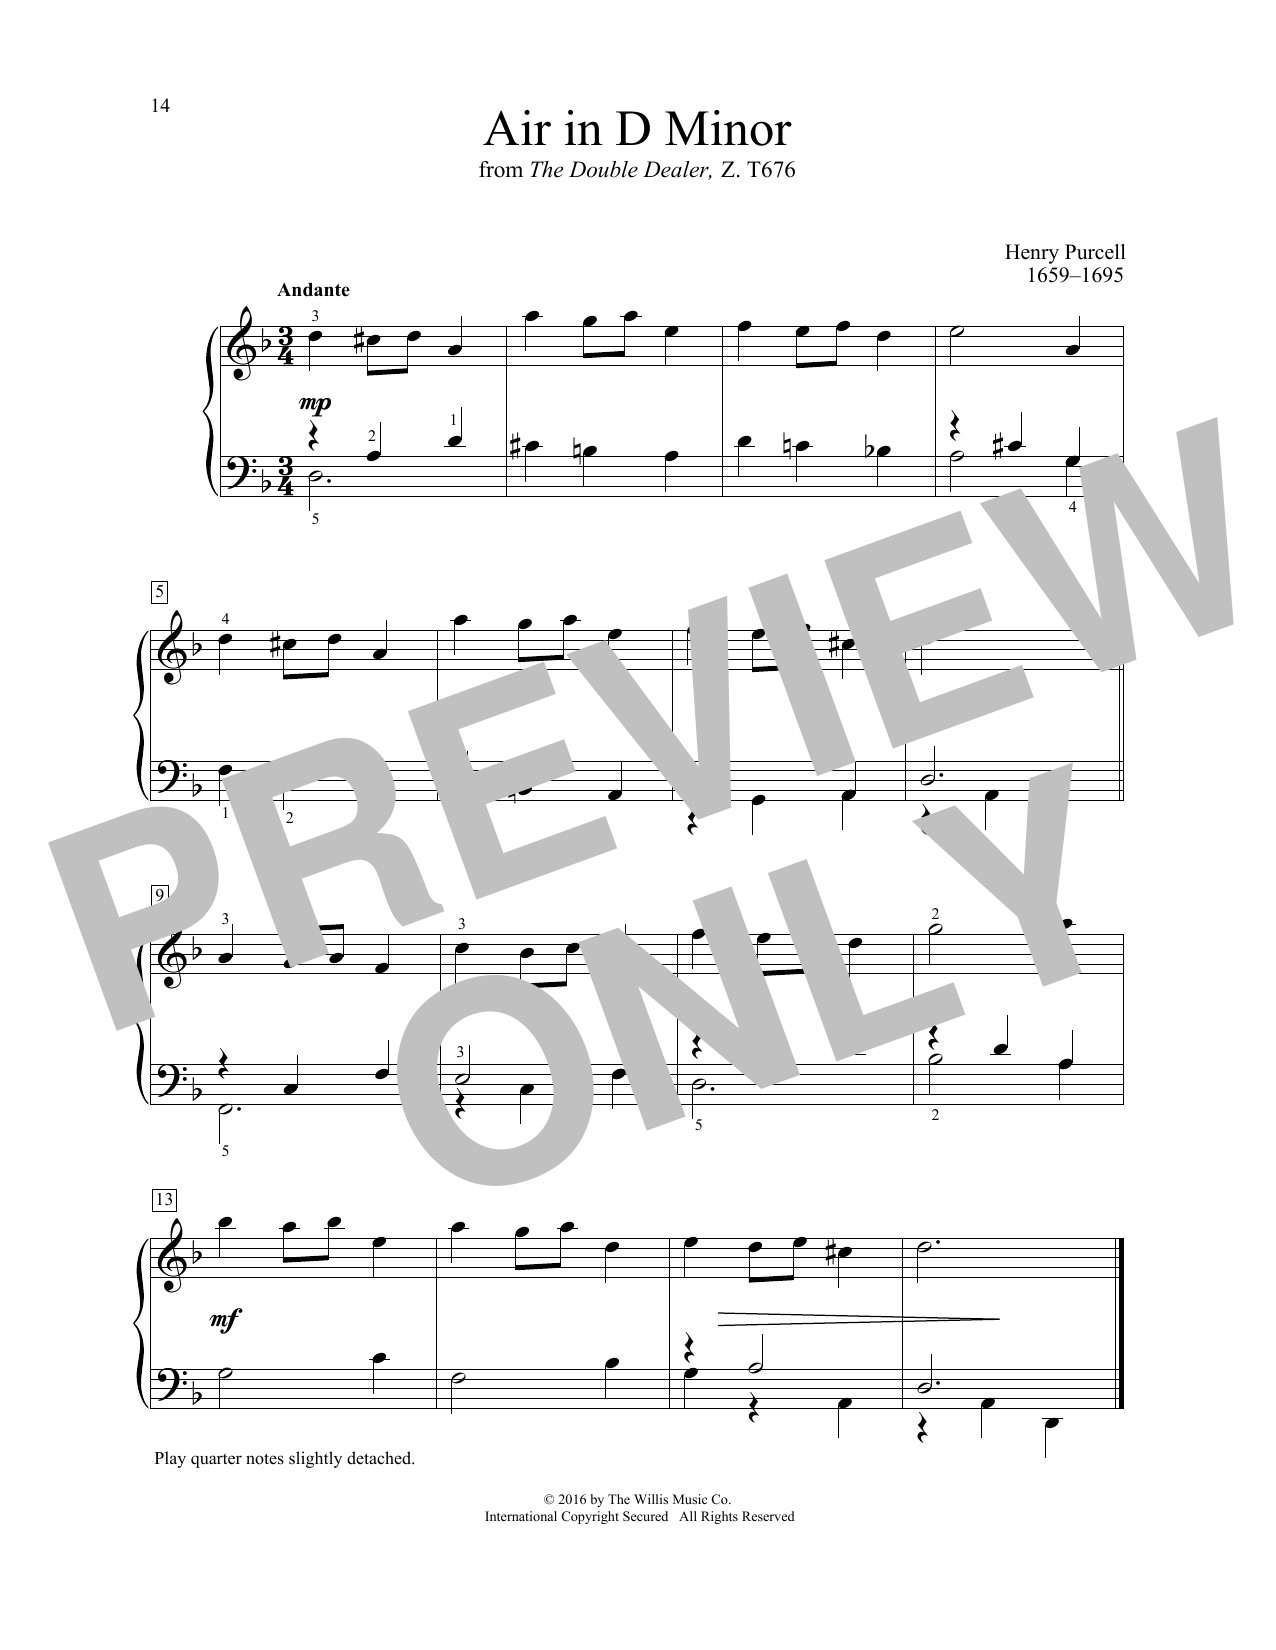 Henry Purcell Air In D Minor sheet music notes and chords. Download Printable PDF.